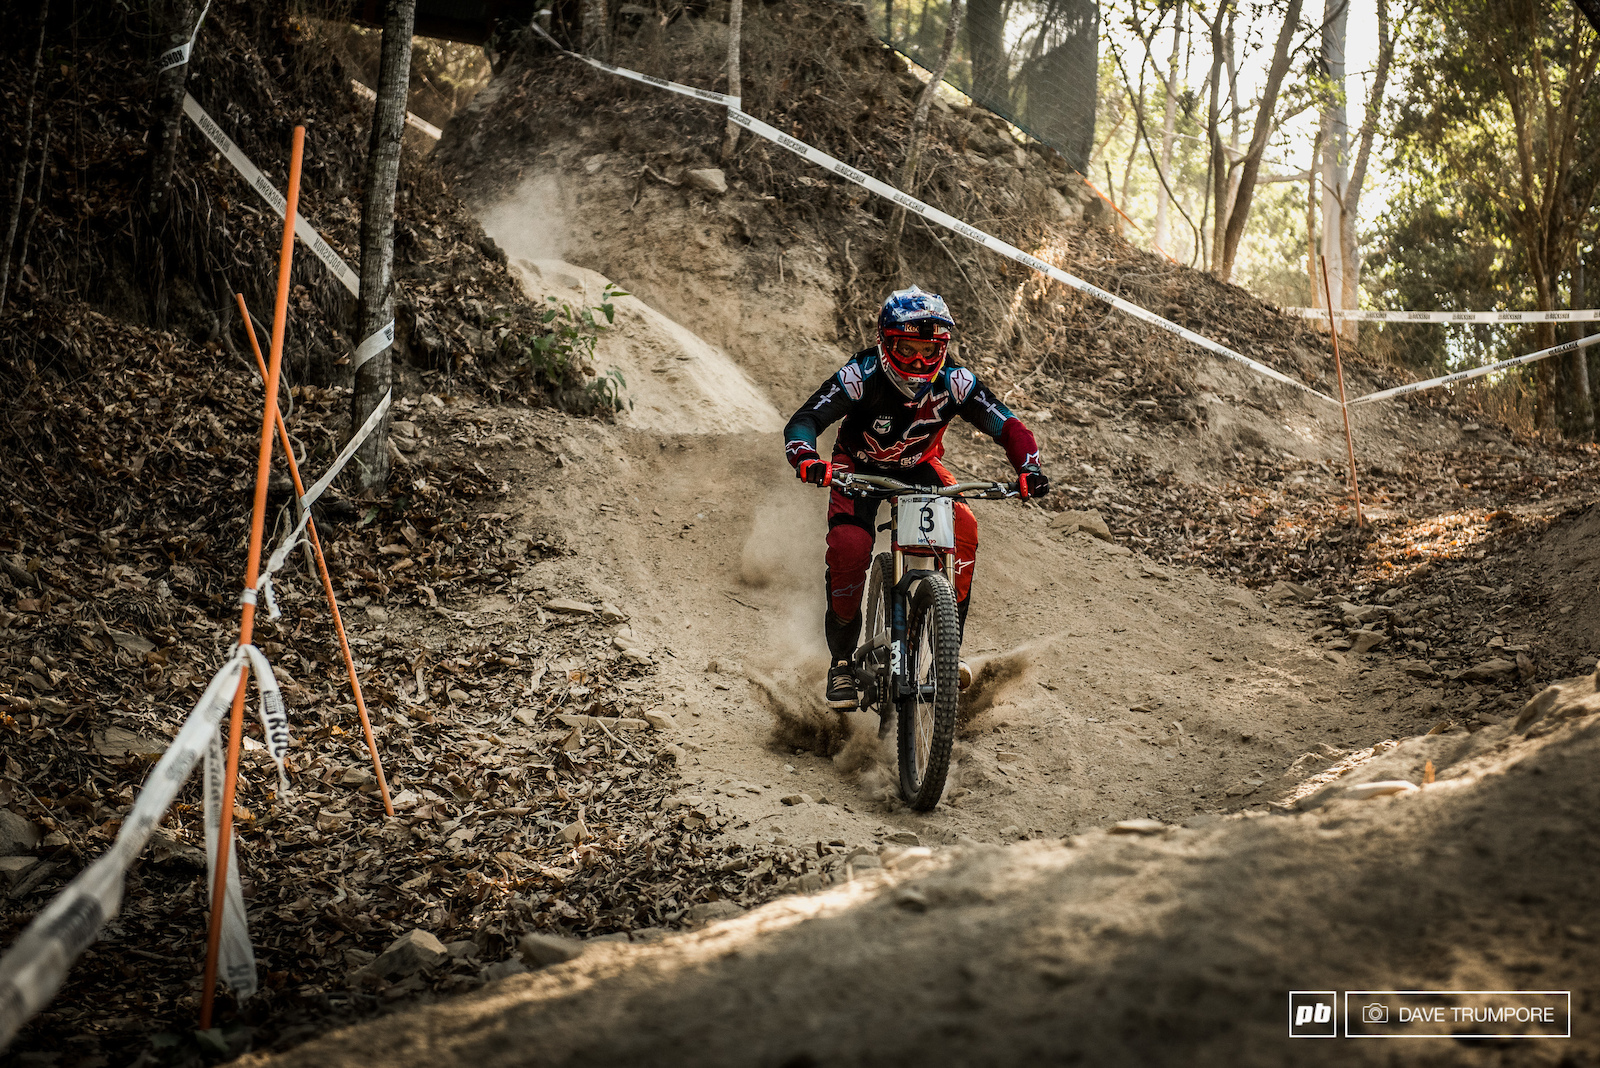 Aaron Gwin has never had luck on his side at World Champs. Could this be the year he finally gets the monkey off his back.